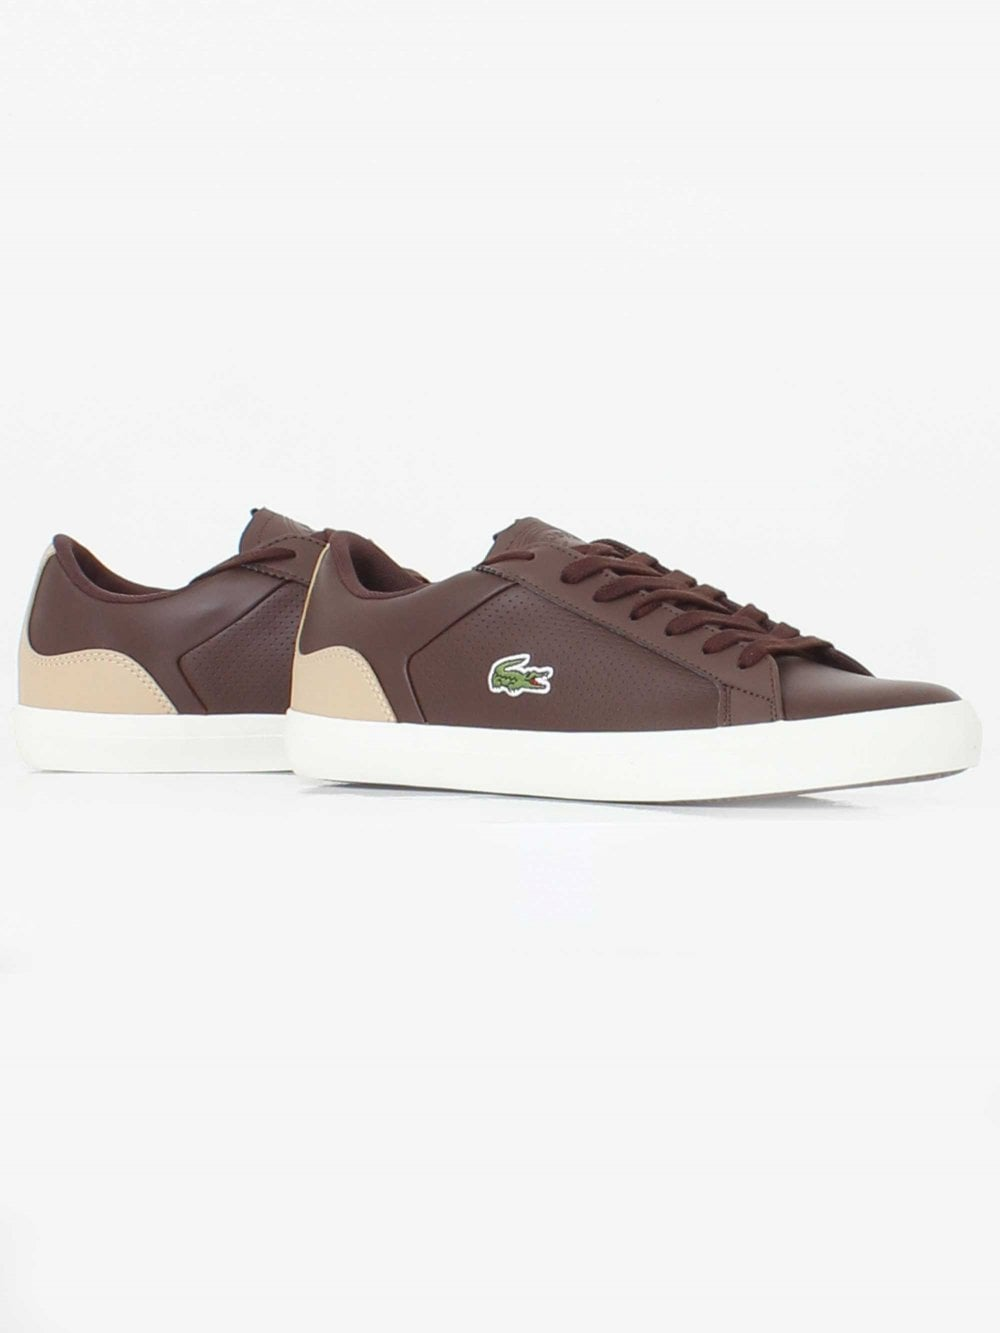 caa8769d7 Lacoste Lerond 418 Trainer in Brown